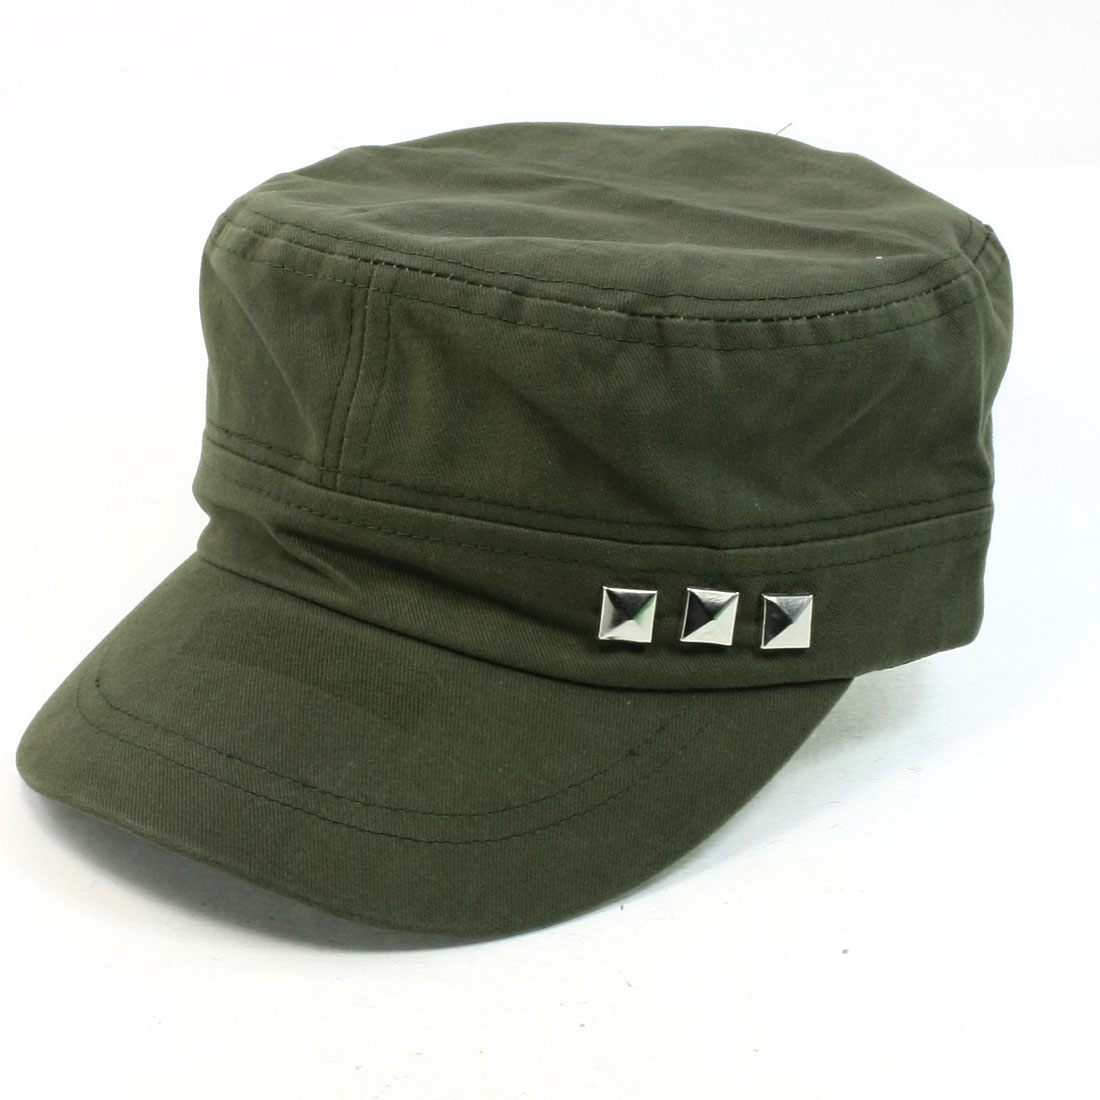 Metal Stud Dec Army Green Adjustable Headband Warp Beach Visor Peaked Cap for Unisex